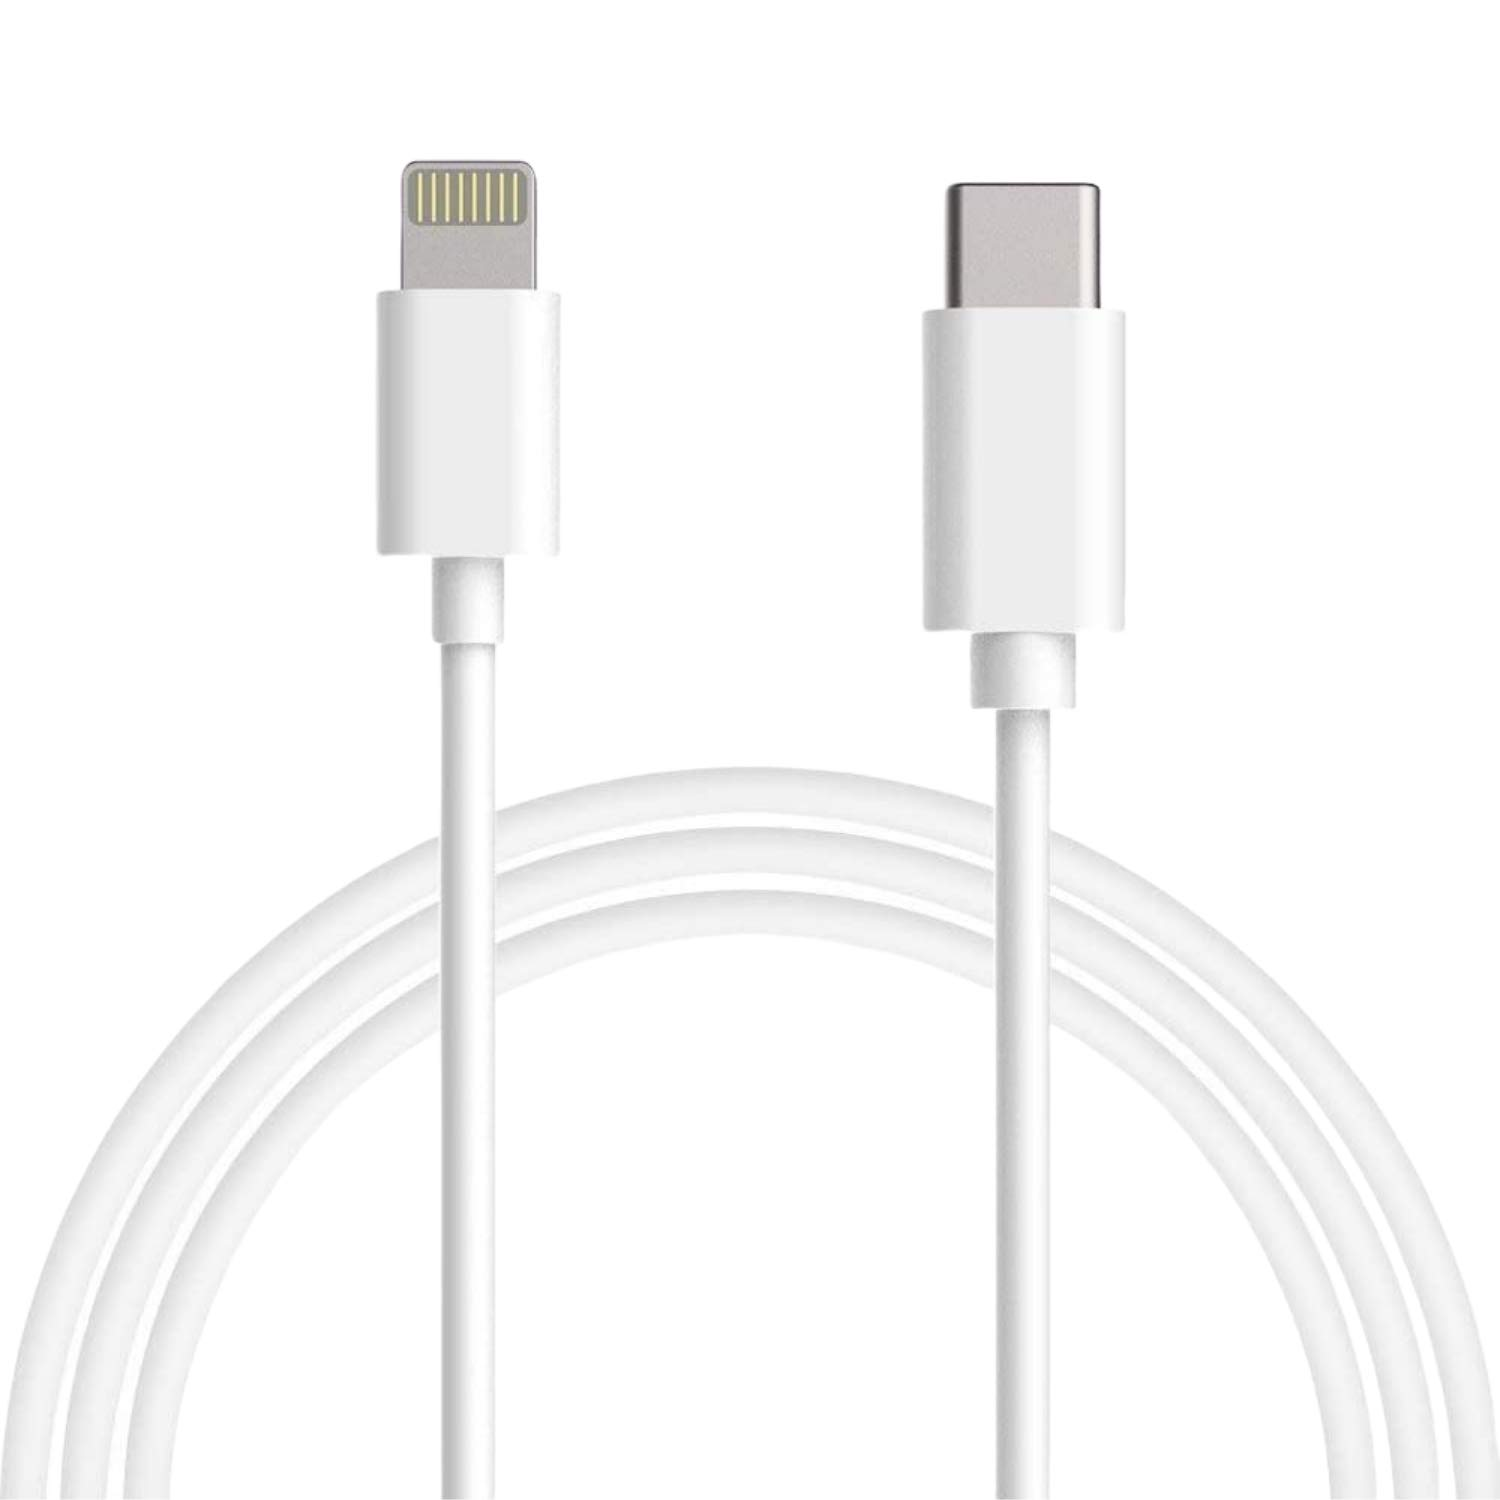 USB C to Lightning Cable 6 FT - Apple MFi Certified Lightning to USB-C Fast Charging Cable Compatible with iPhone 11/11 Pro/11 Pro Max/X/XS/XR/XS/8/8 Plus, Supports Power, Sync, Made to Last (1 Pack)